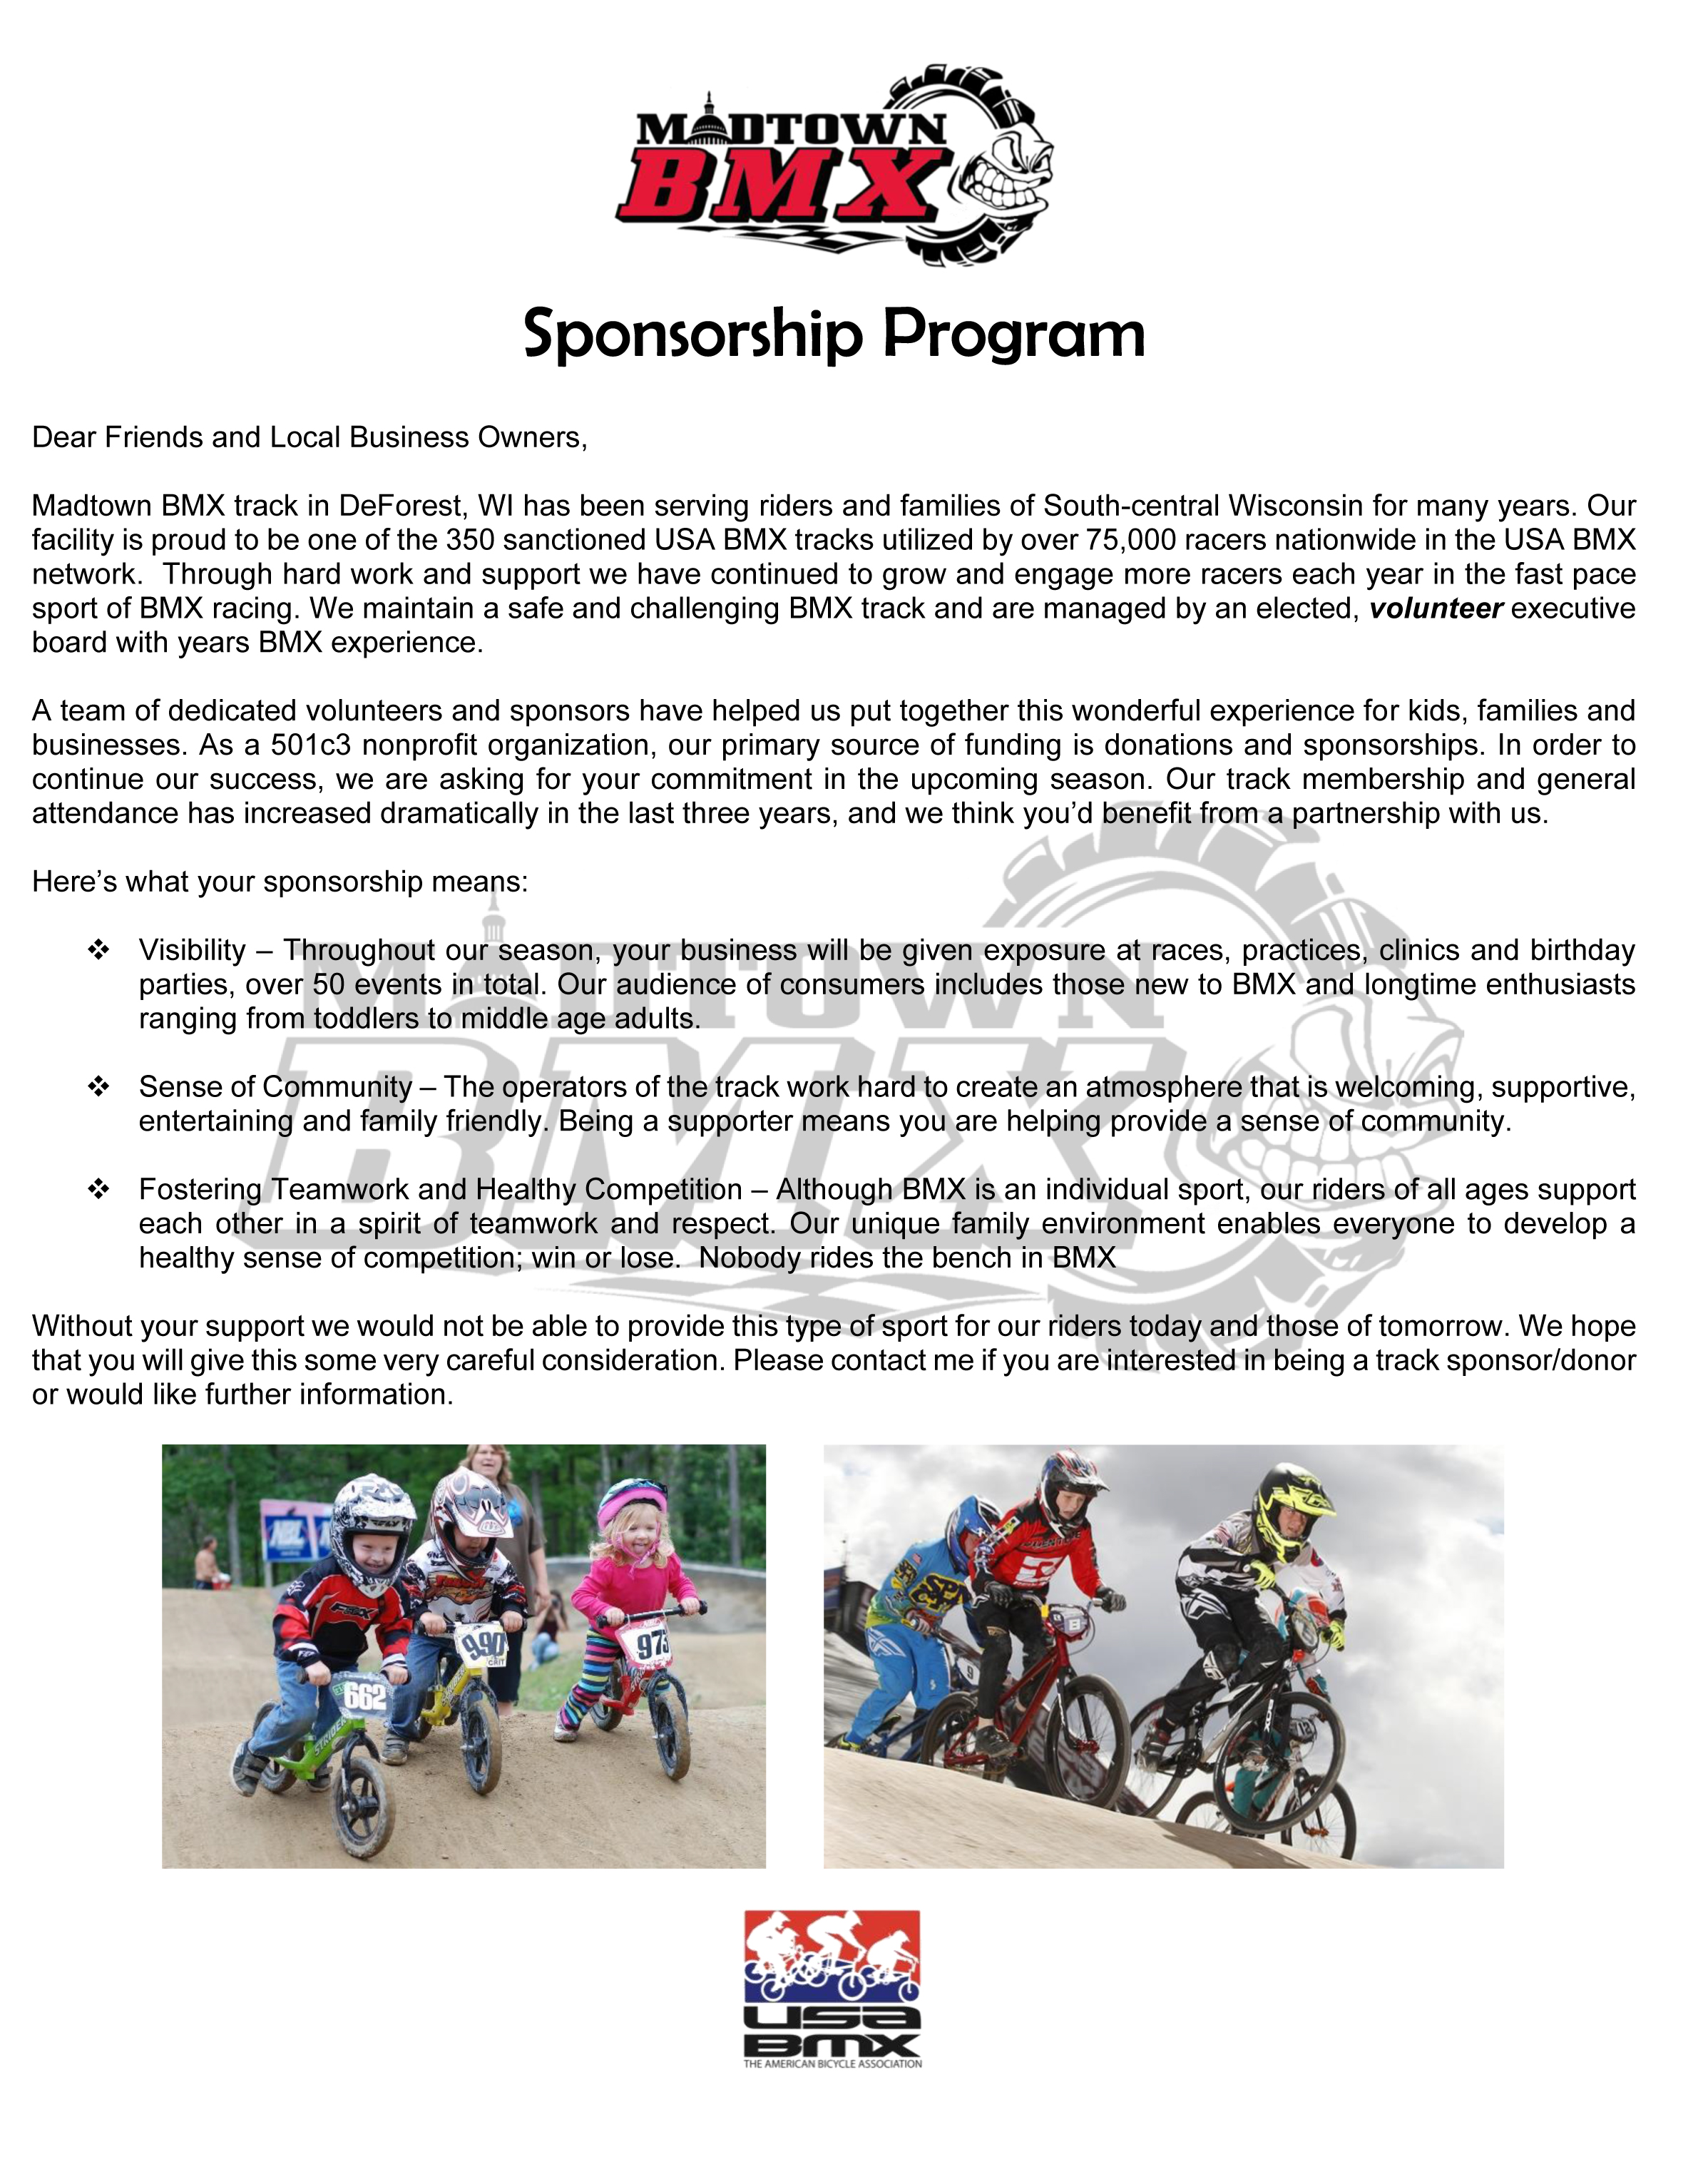 Madtown_bmx_sponsorship_program_-_new-1